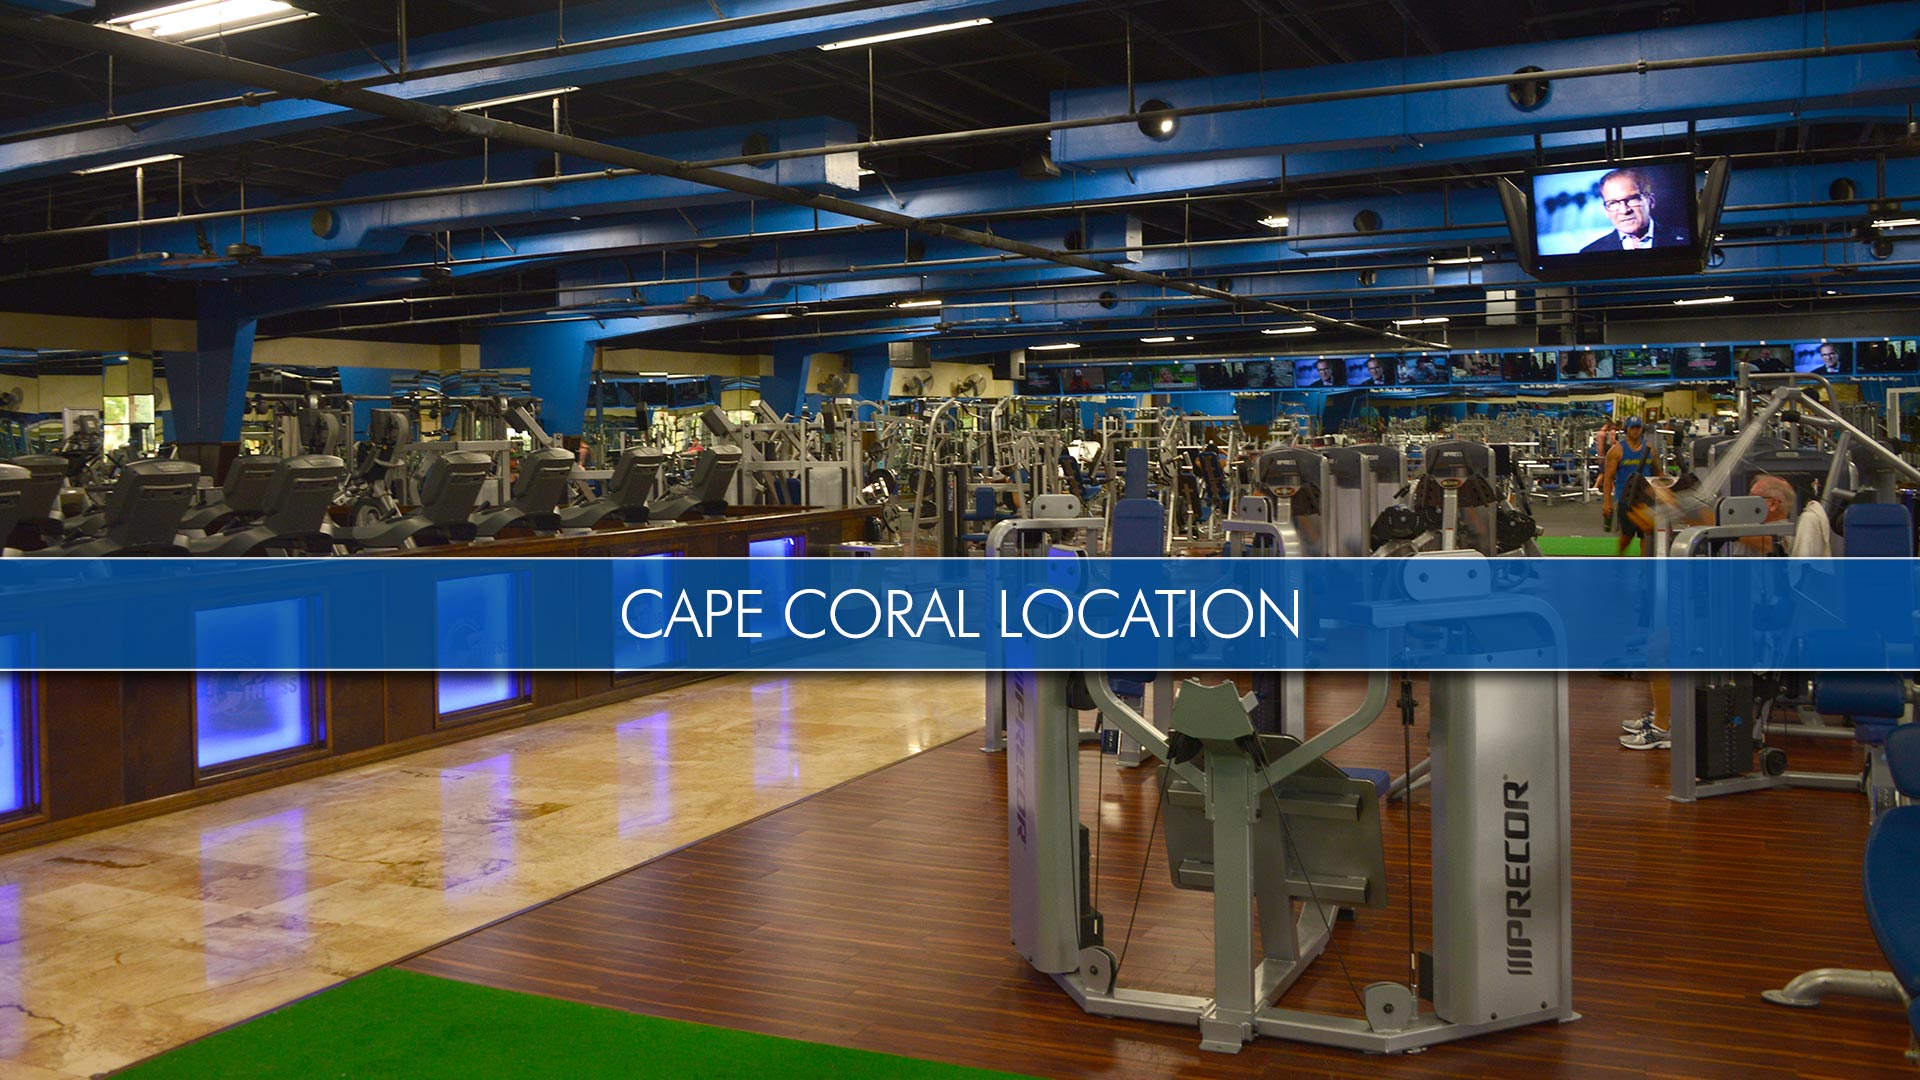 ATC Fitness Cape Coral Location